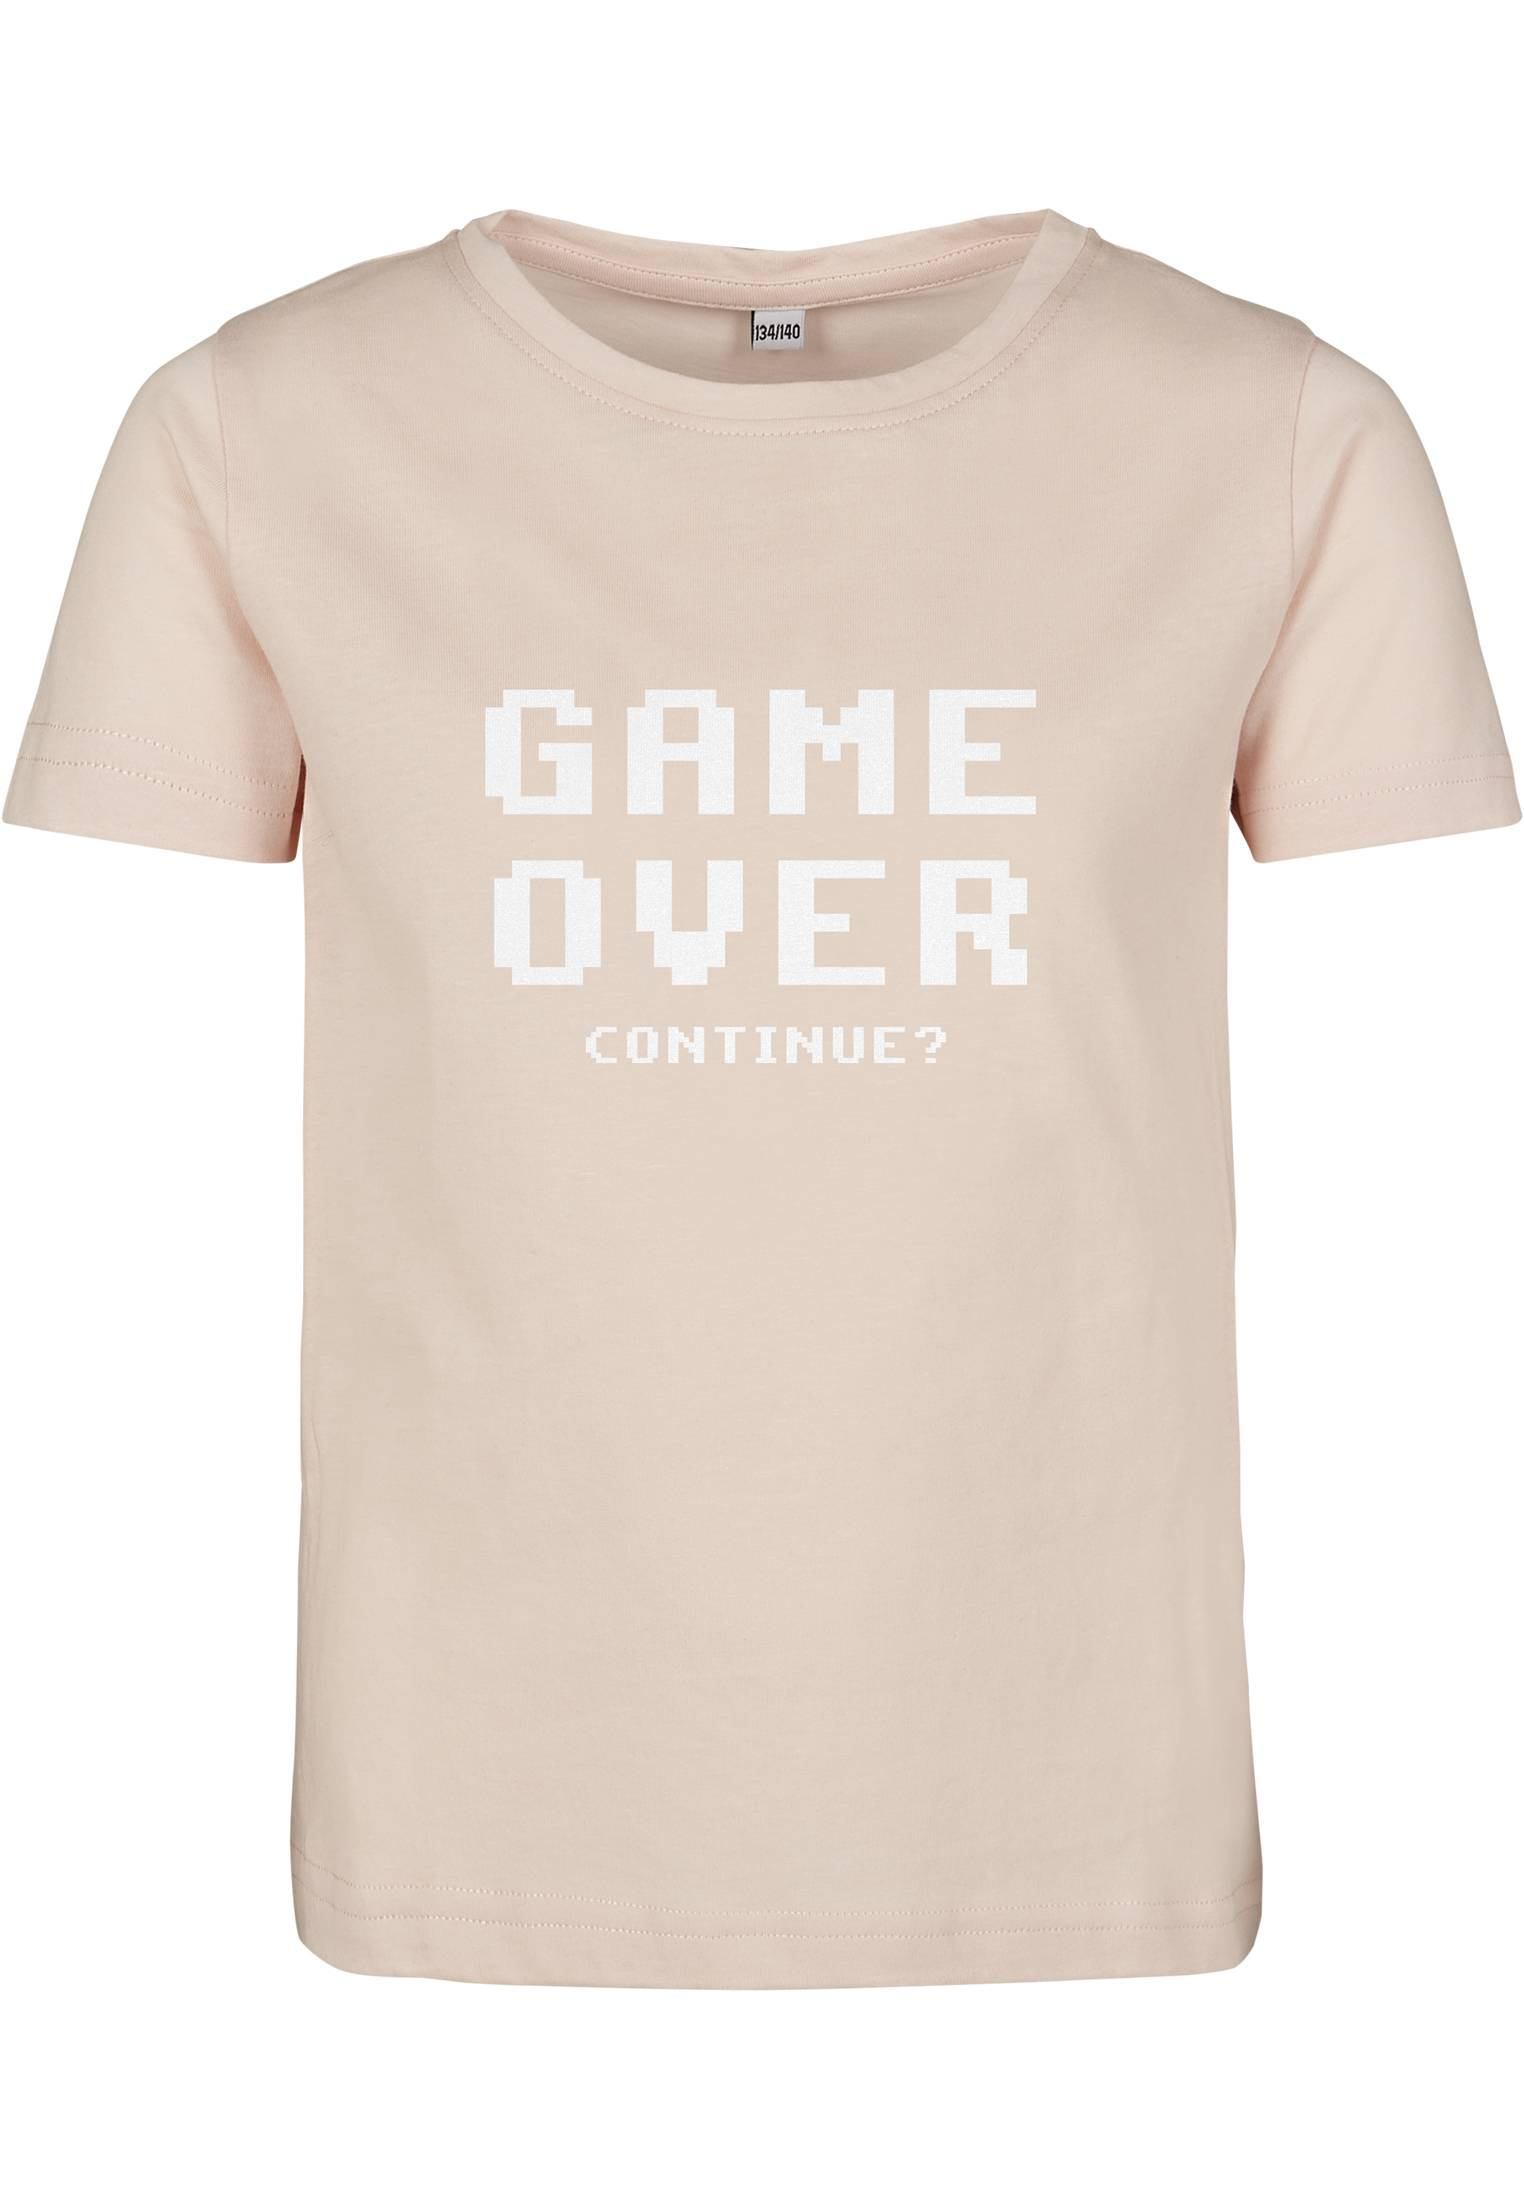 Mister Tee Kids Game Over Tee pink - 110/116